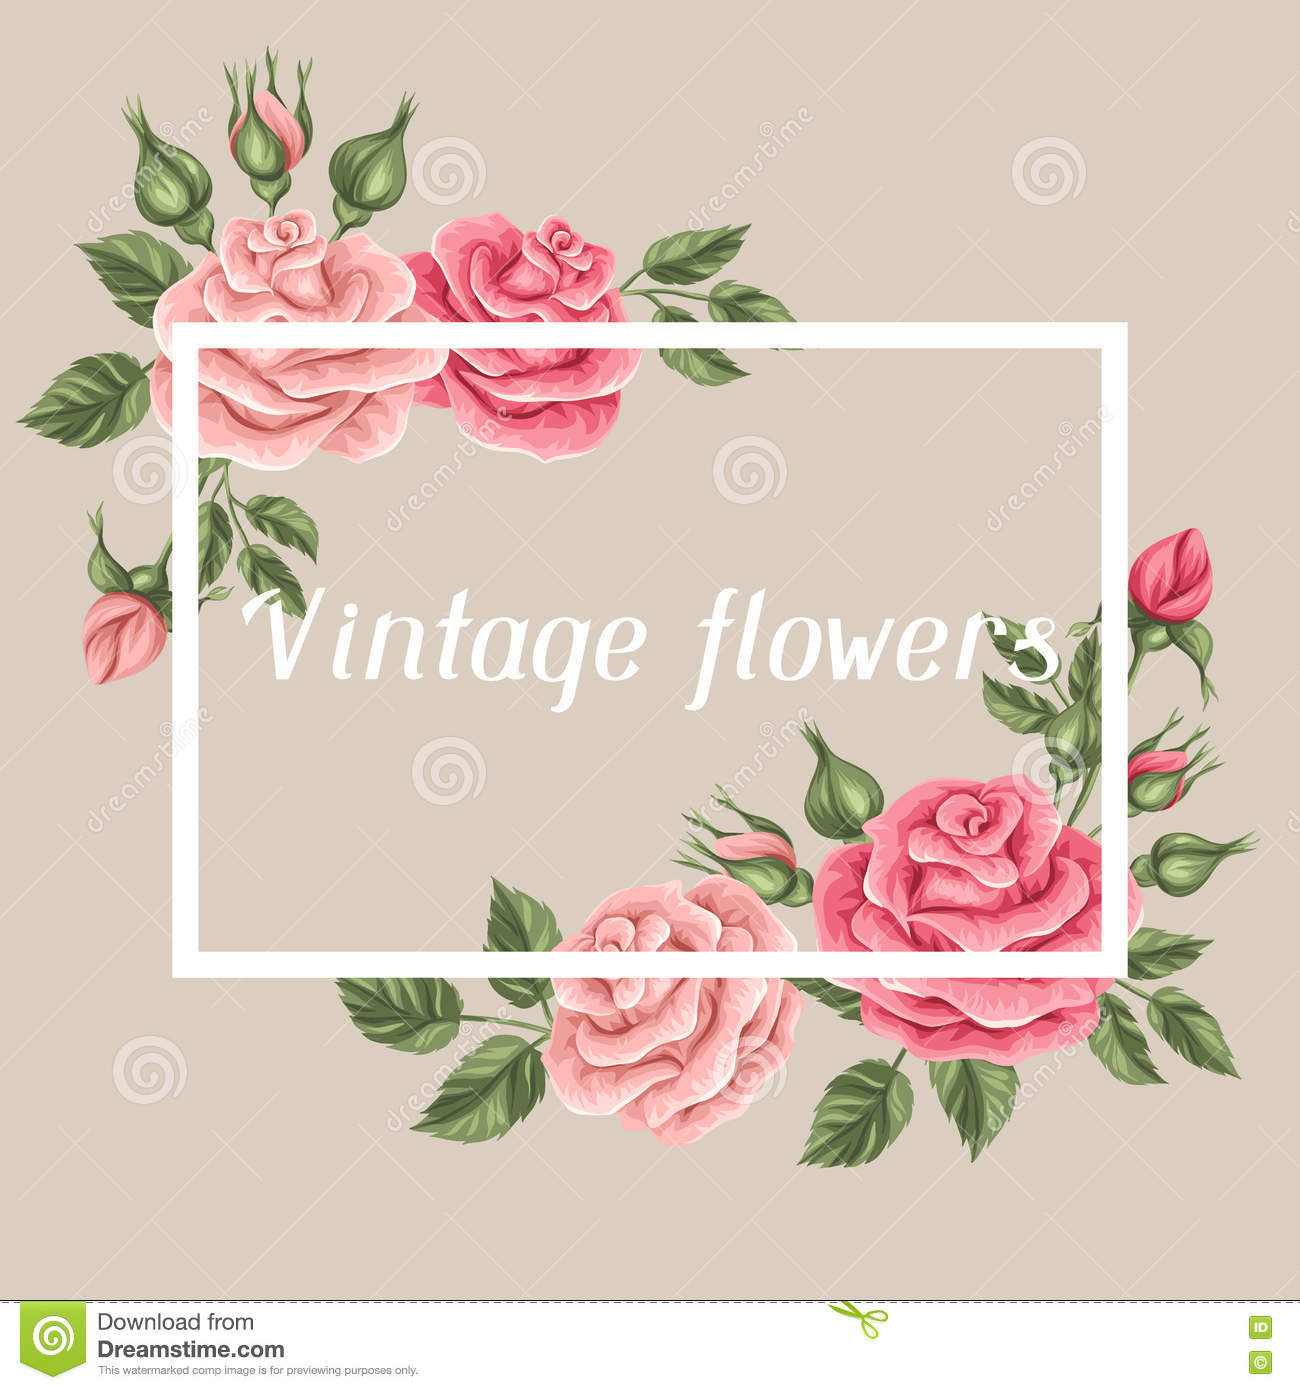 Background With Vintage Roses. Decorative Retro Flowers. Image For ...